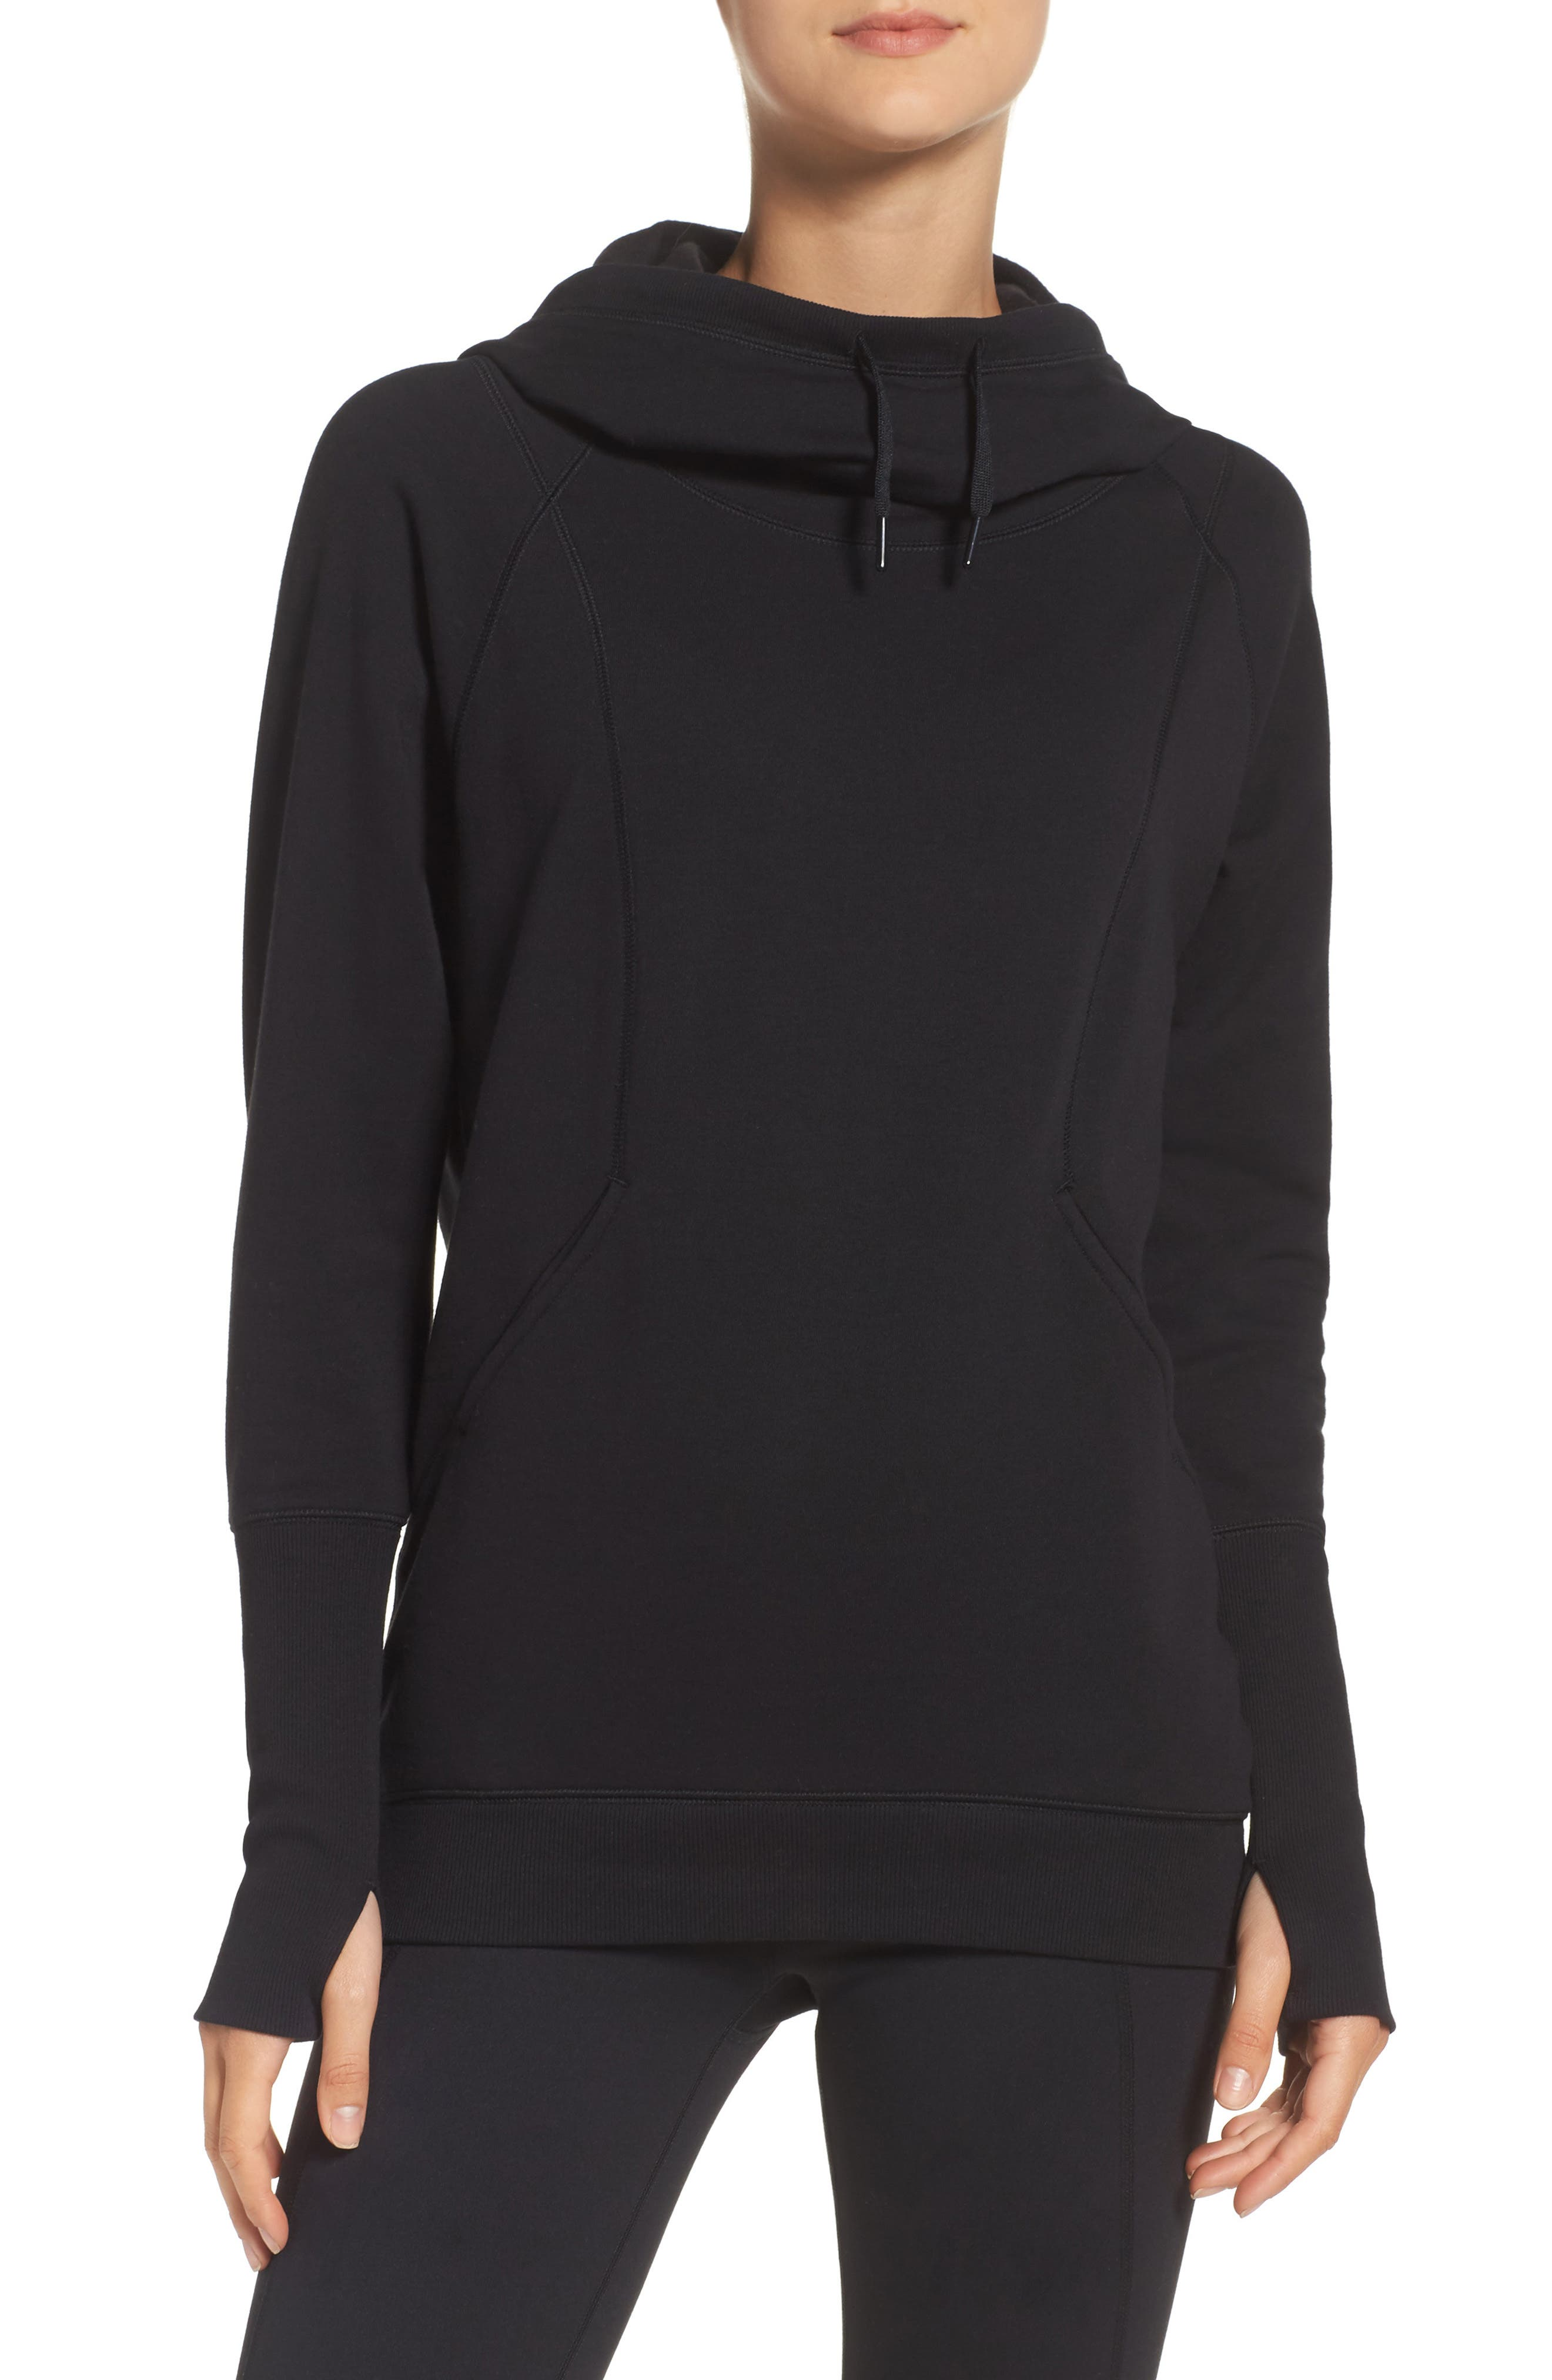 Outta Town Hoodie,                         Main,                         color, Black